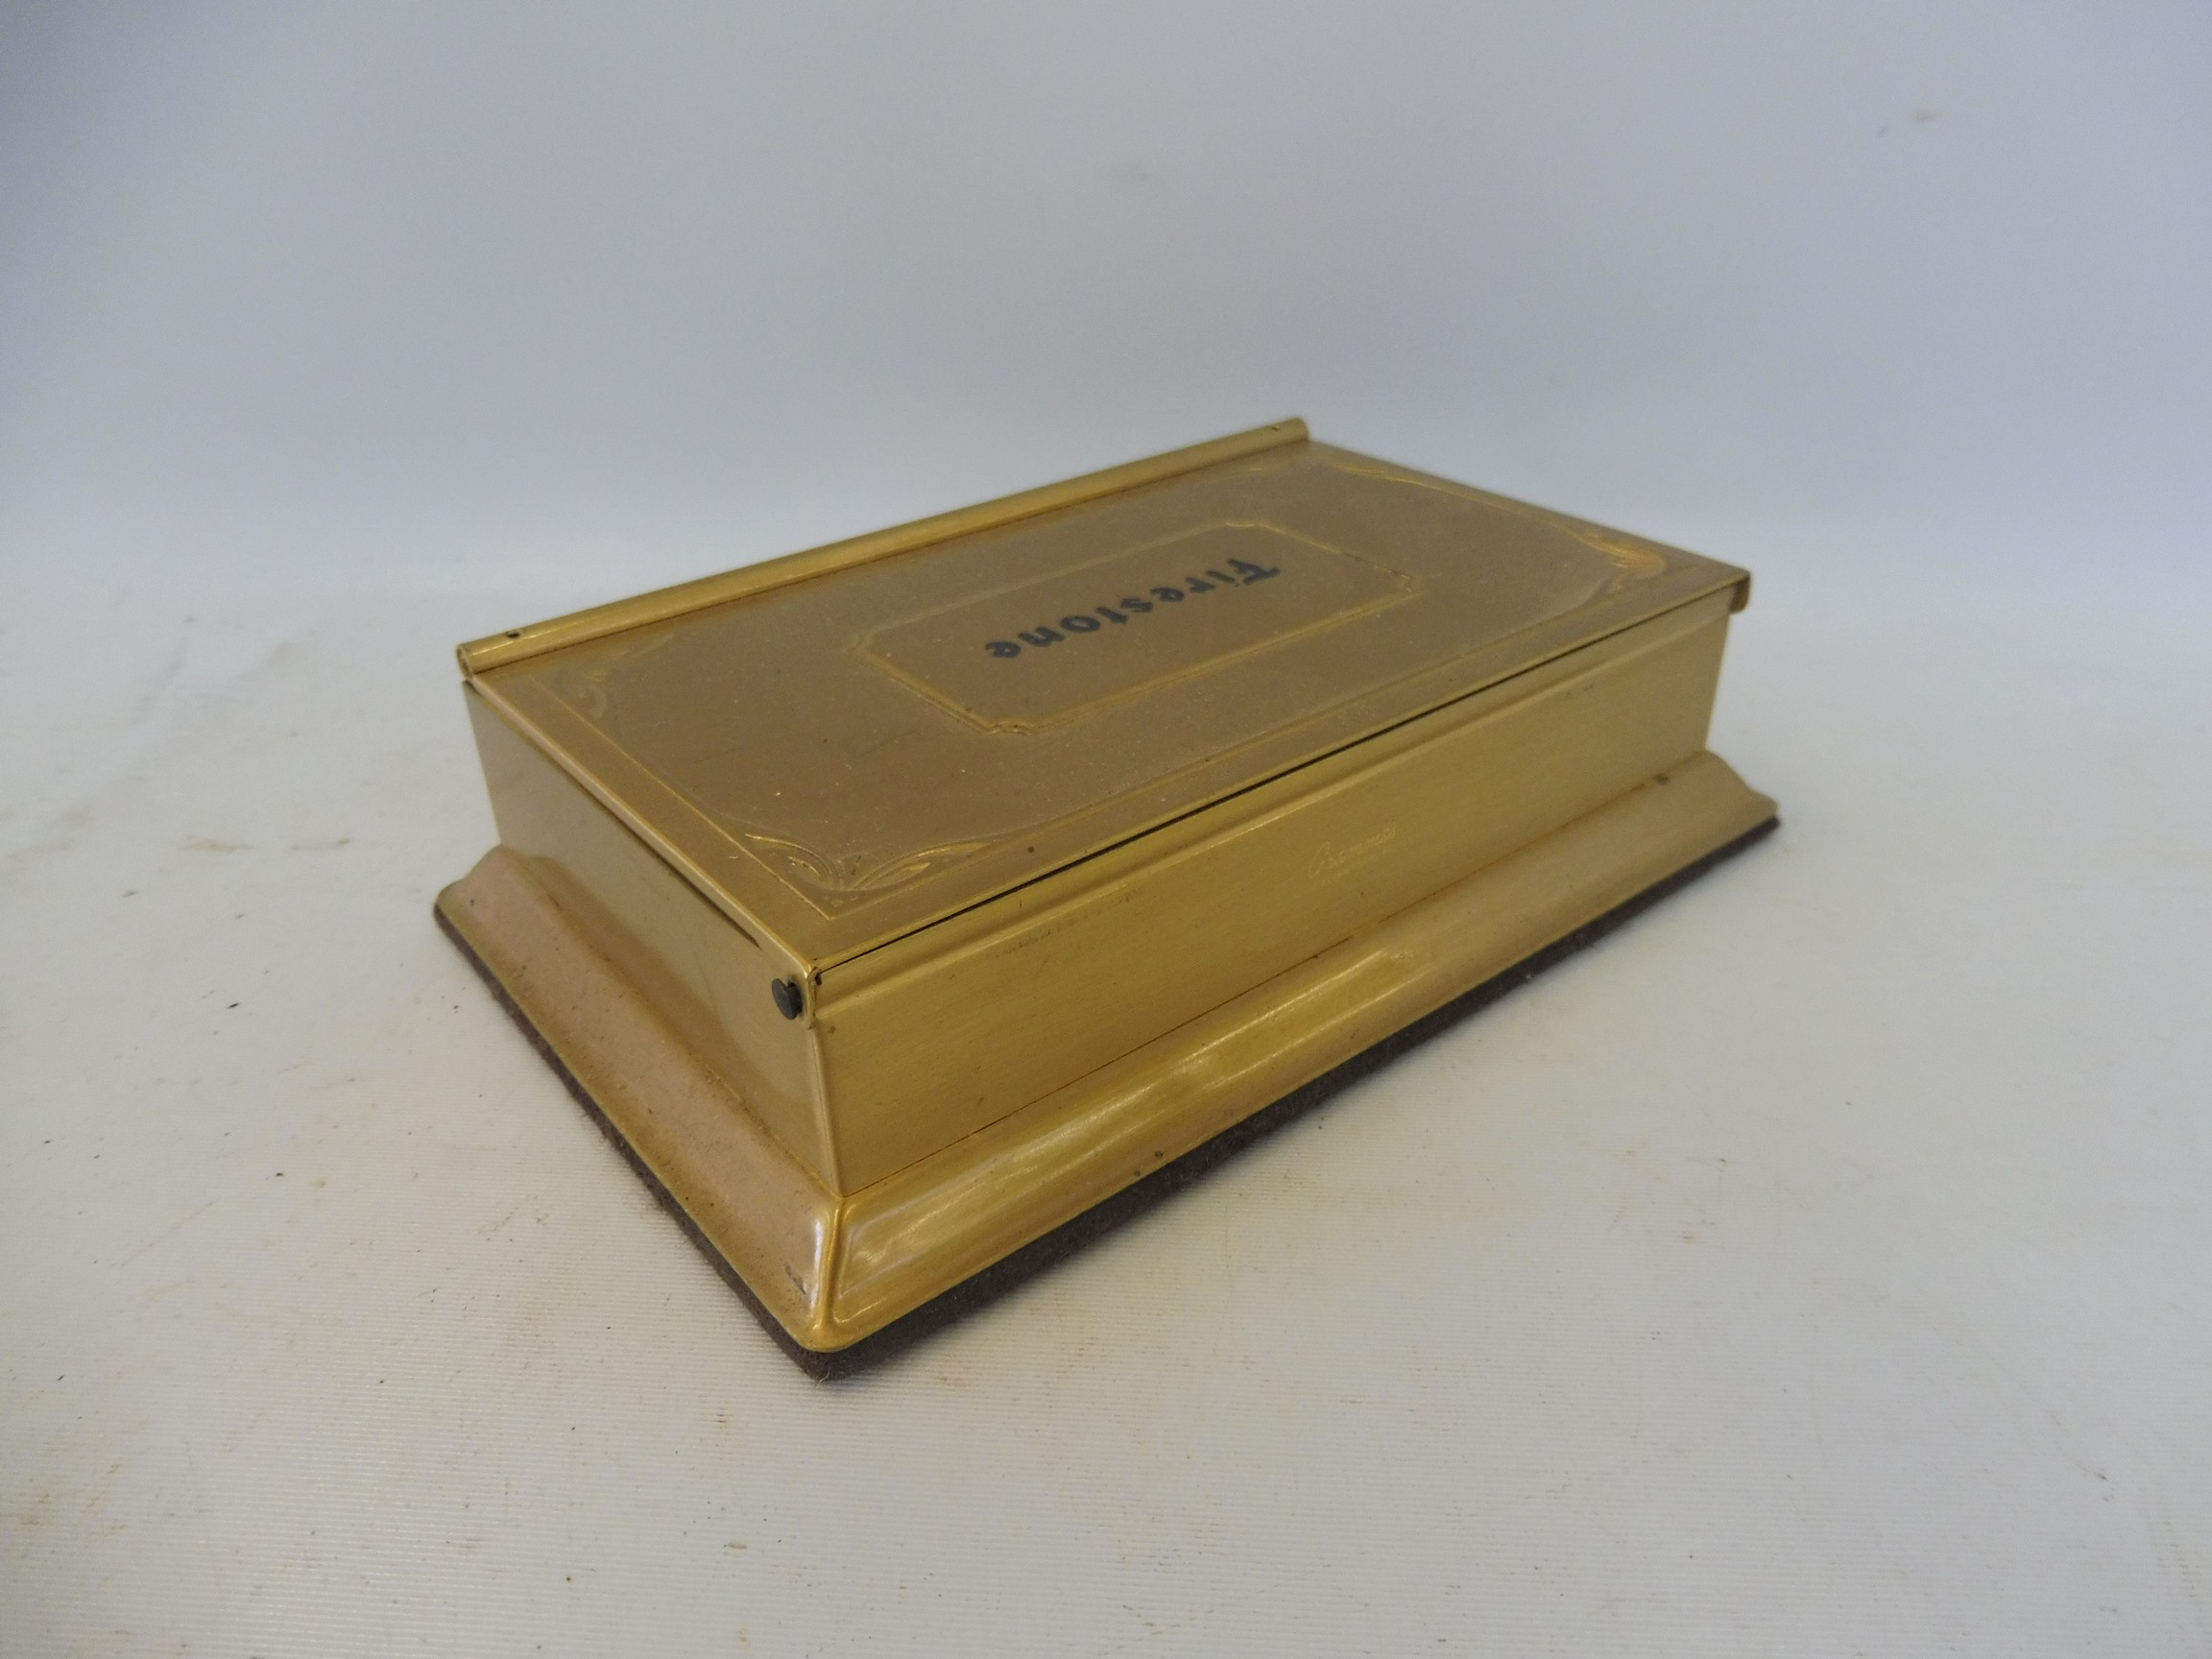 A Firestone tyres advertising brass paper note holder and calendar. - Image 3 of 4